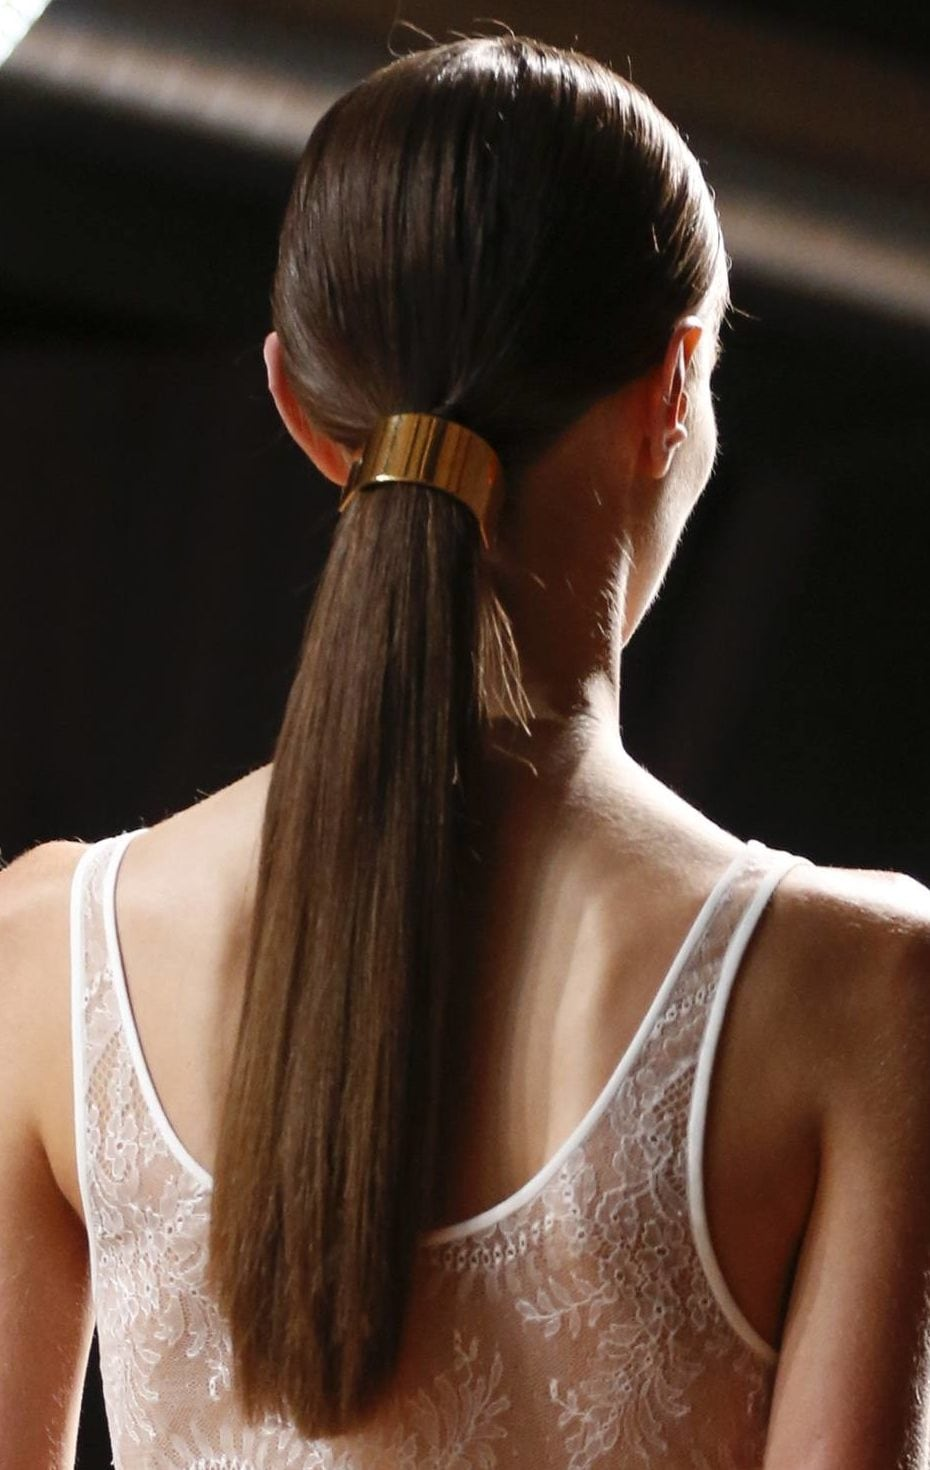 brunette model in a white lace dress with her hair in a high ponytail with wrap accessory